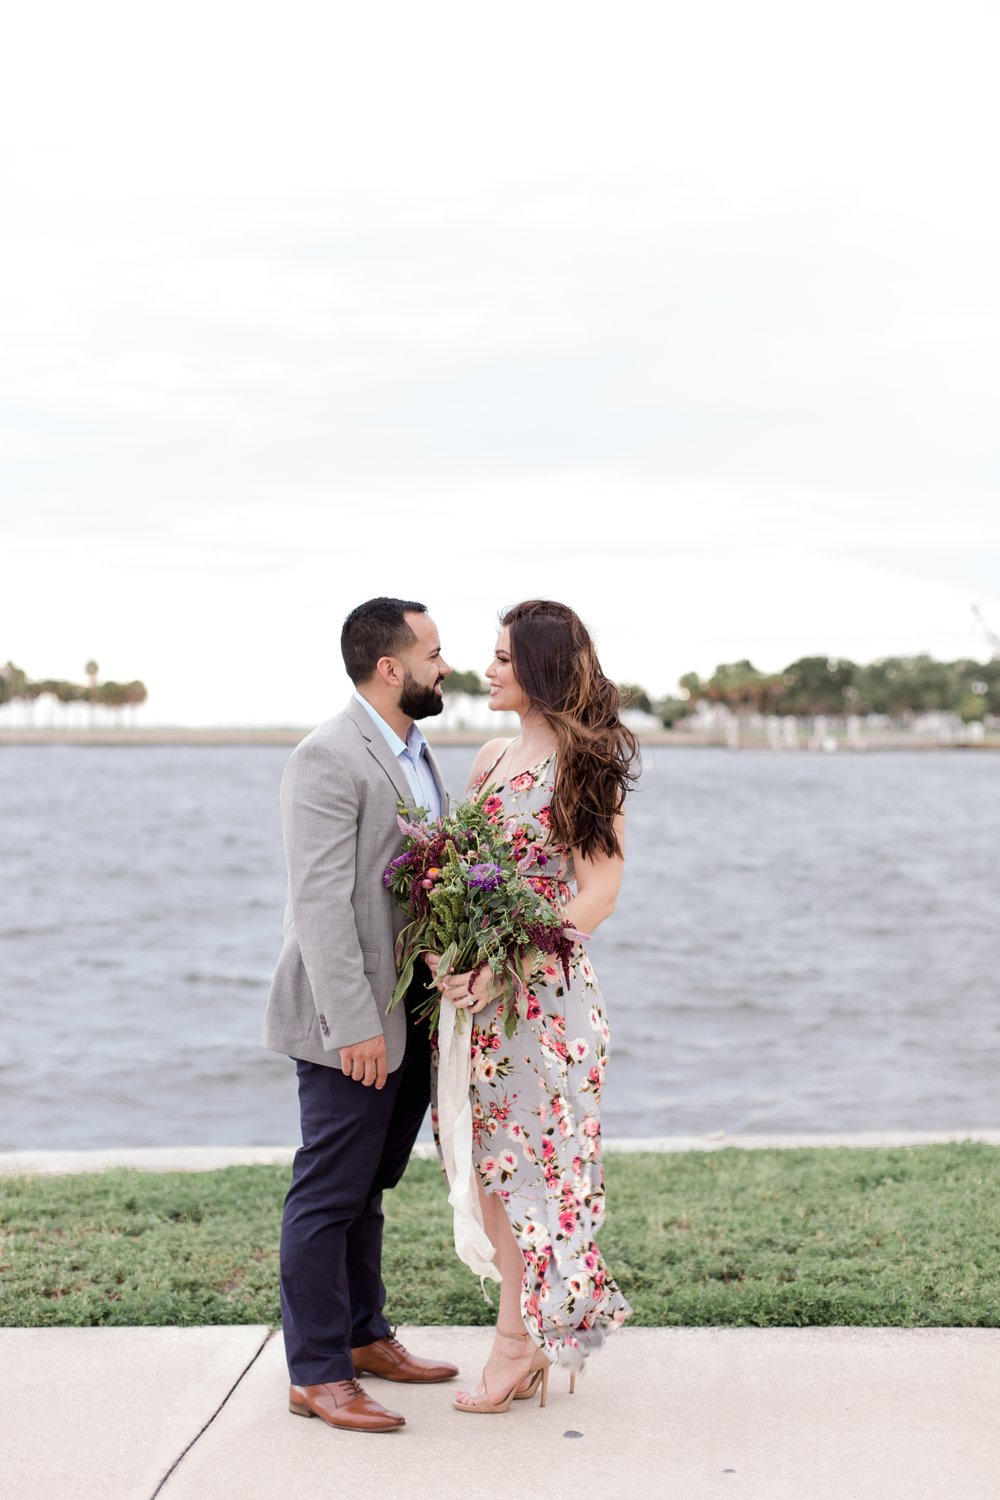 St-pete-florida-engagement-session-nicole-mike-I58A6820-1.jpg